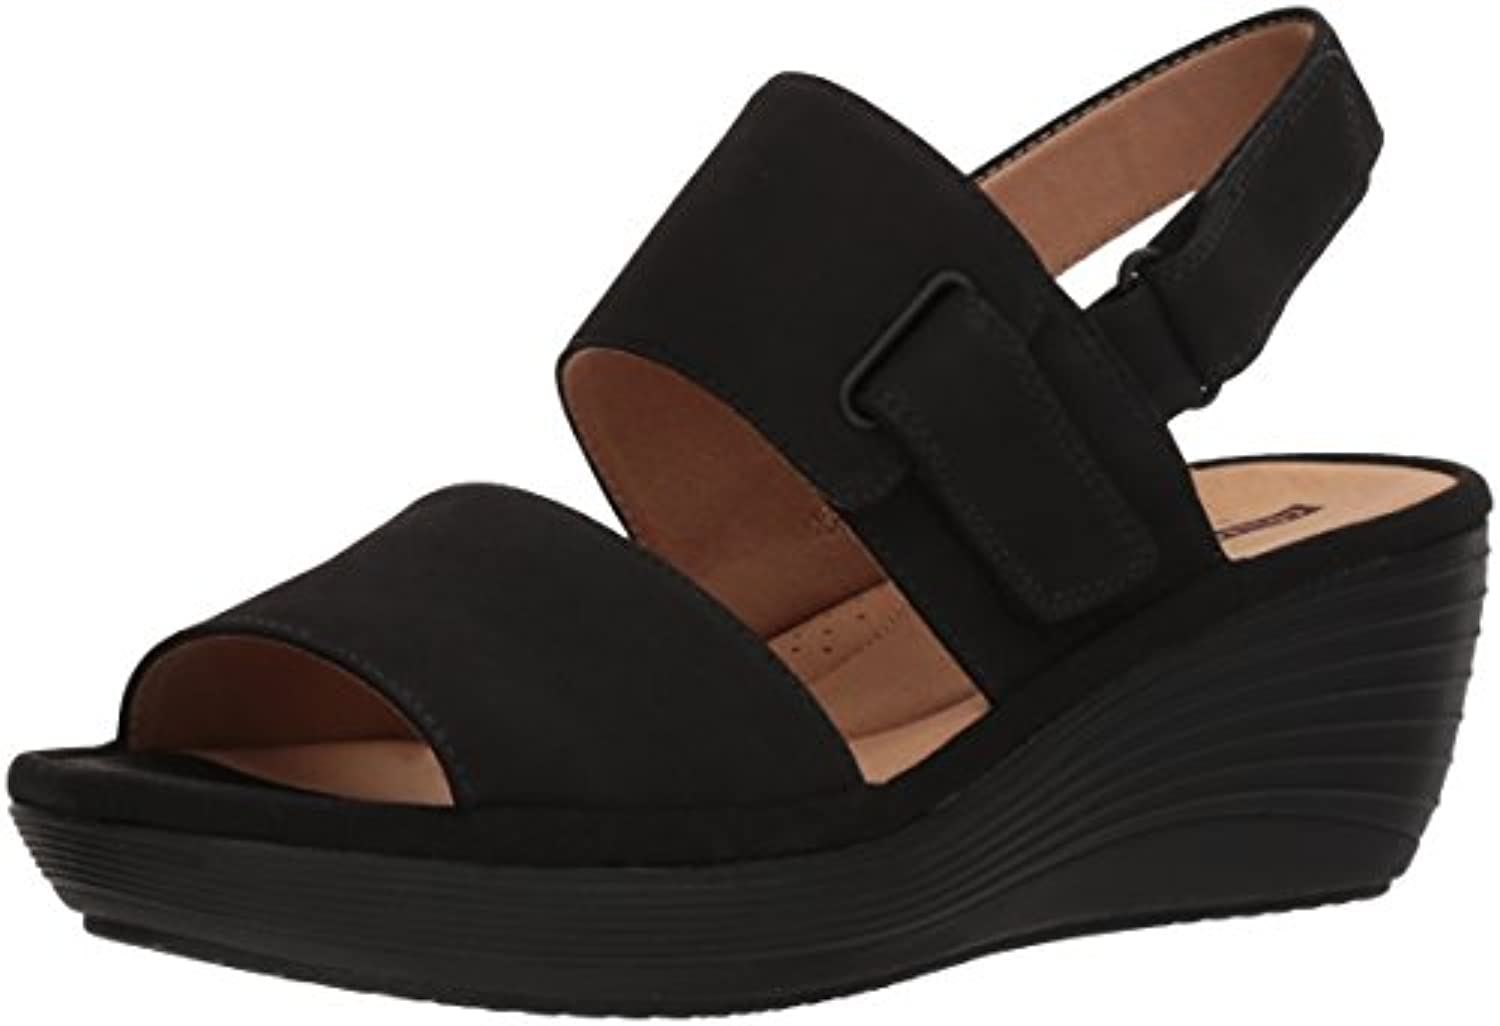 Clarks Clarks Clarks Wouomo Reedly Breen Wedge Sandal, nero Nubuck, 10 Medium US | Facile Da Pulire Surface